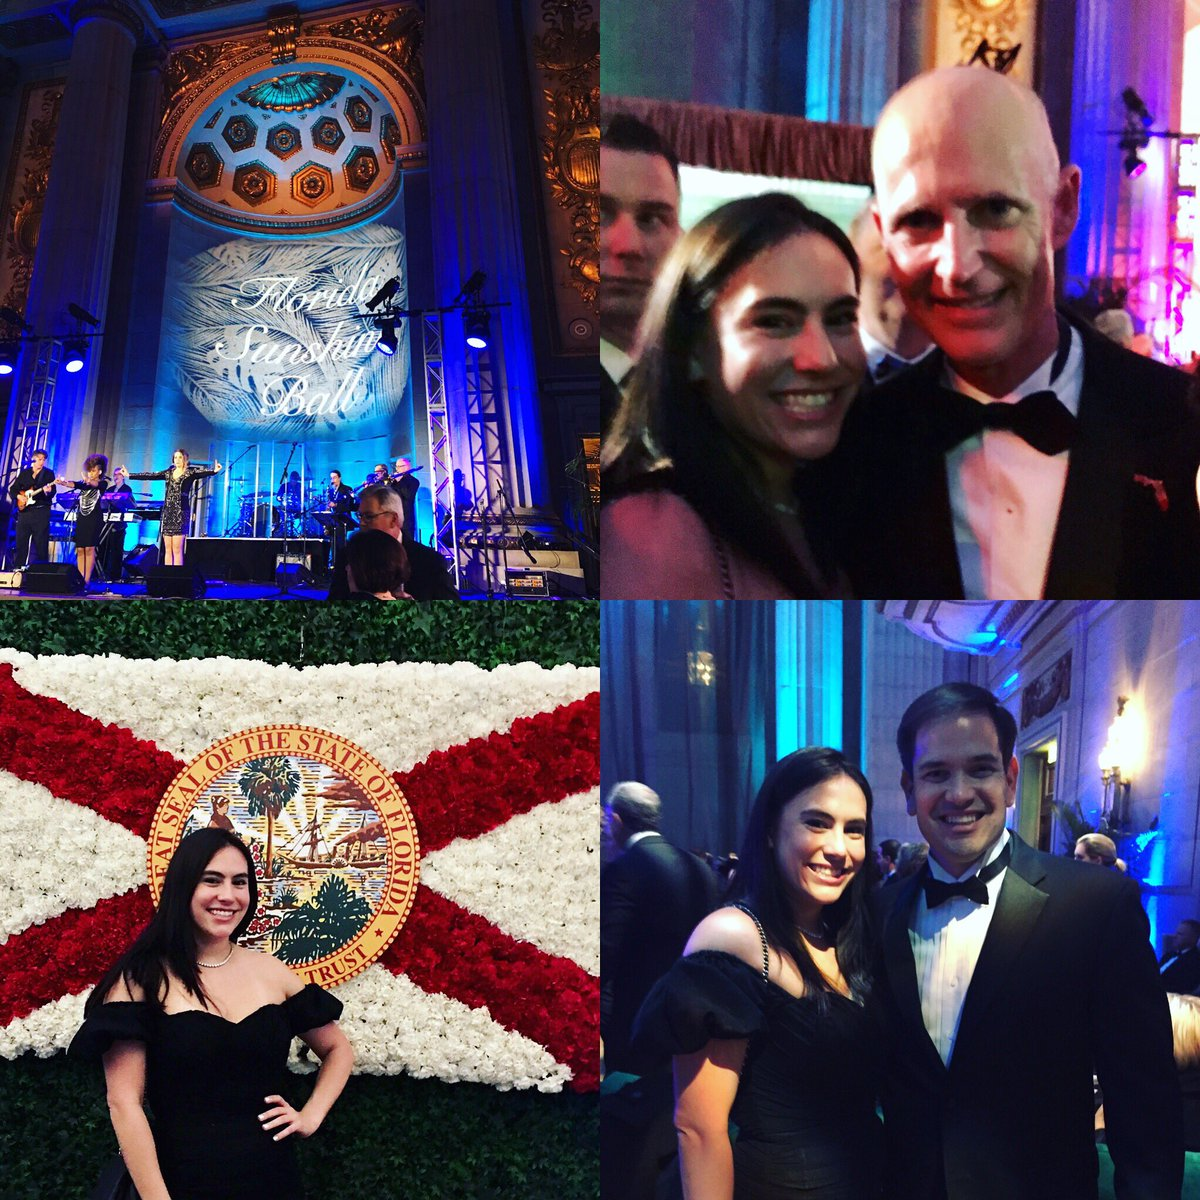 Had a great time at the Florida Sunshine Ball. Thank you @FLGovScott &amp; @marcorubio for a lovely evening. #RPOF #FlaPol #Sayfie <br>http://pic.twitter.com/E1LnaMyZTN